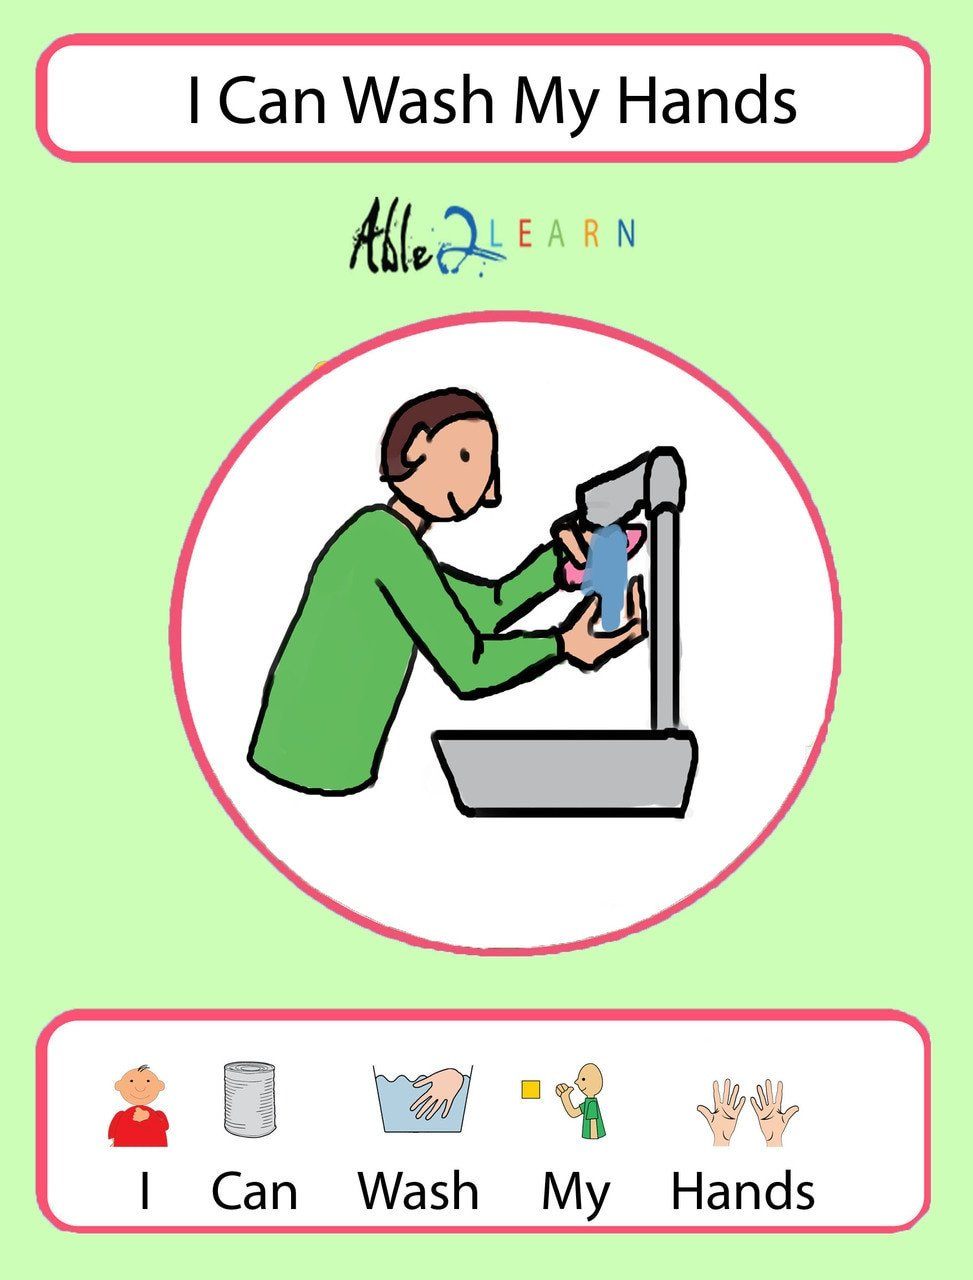 autism hygiene how to wash hands free social stories puberty free aba resources free autism resources autism school free printable worksheets free preschool worksheets autism special education